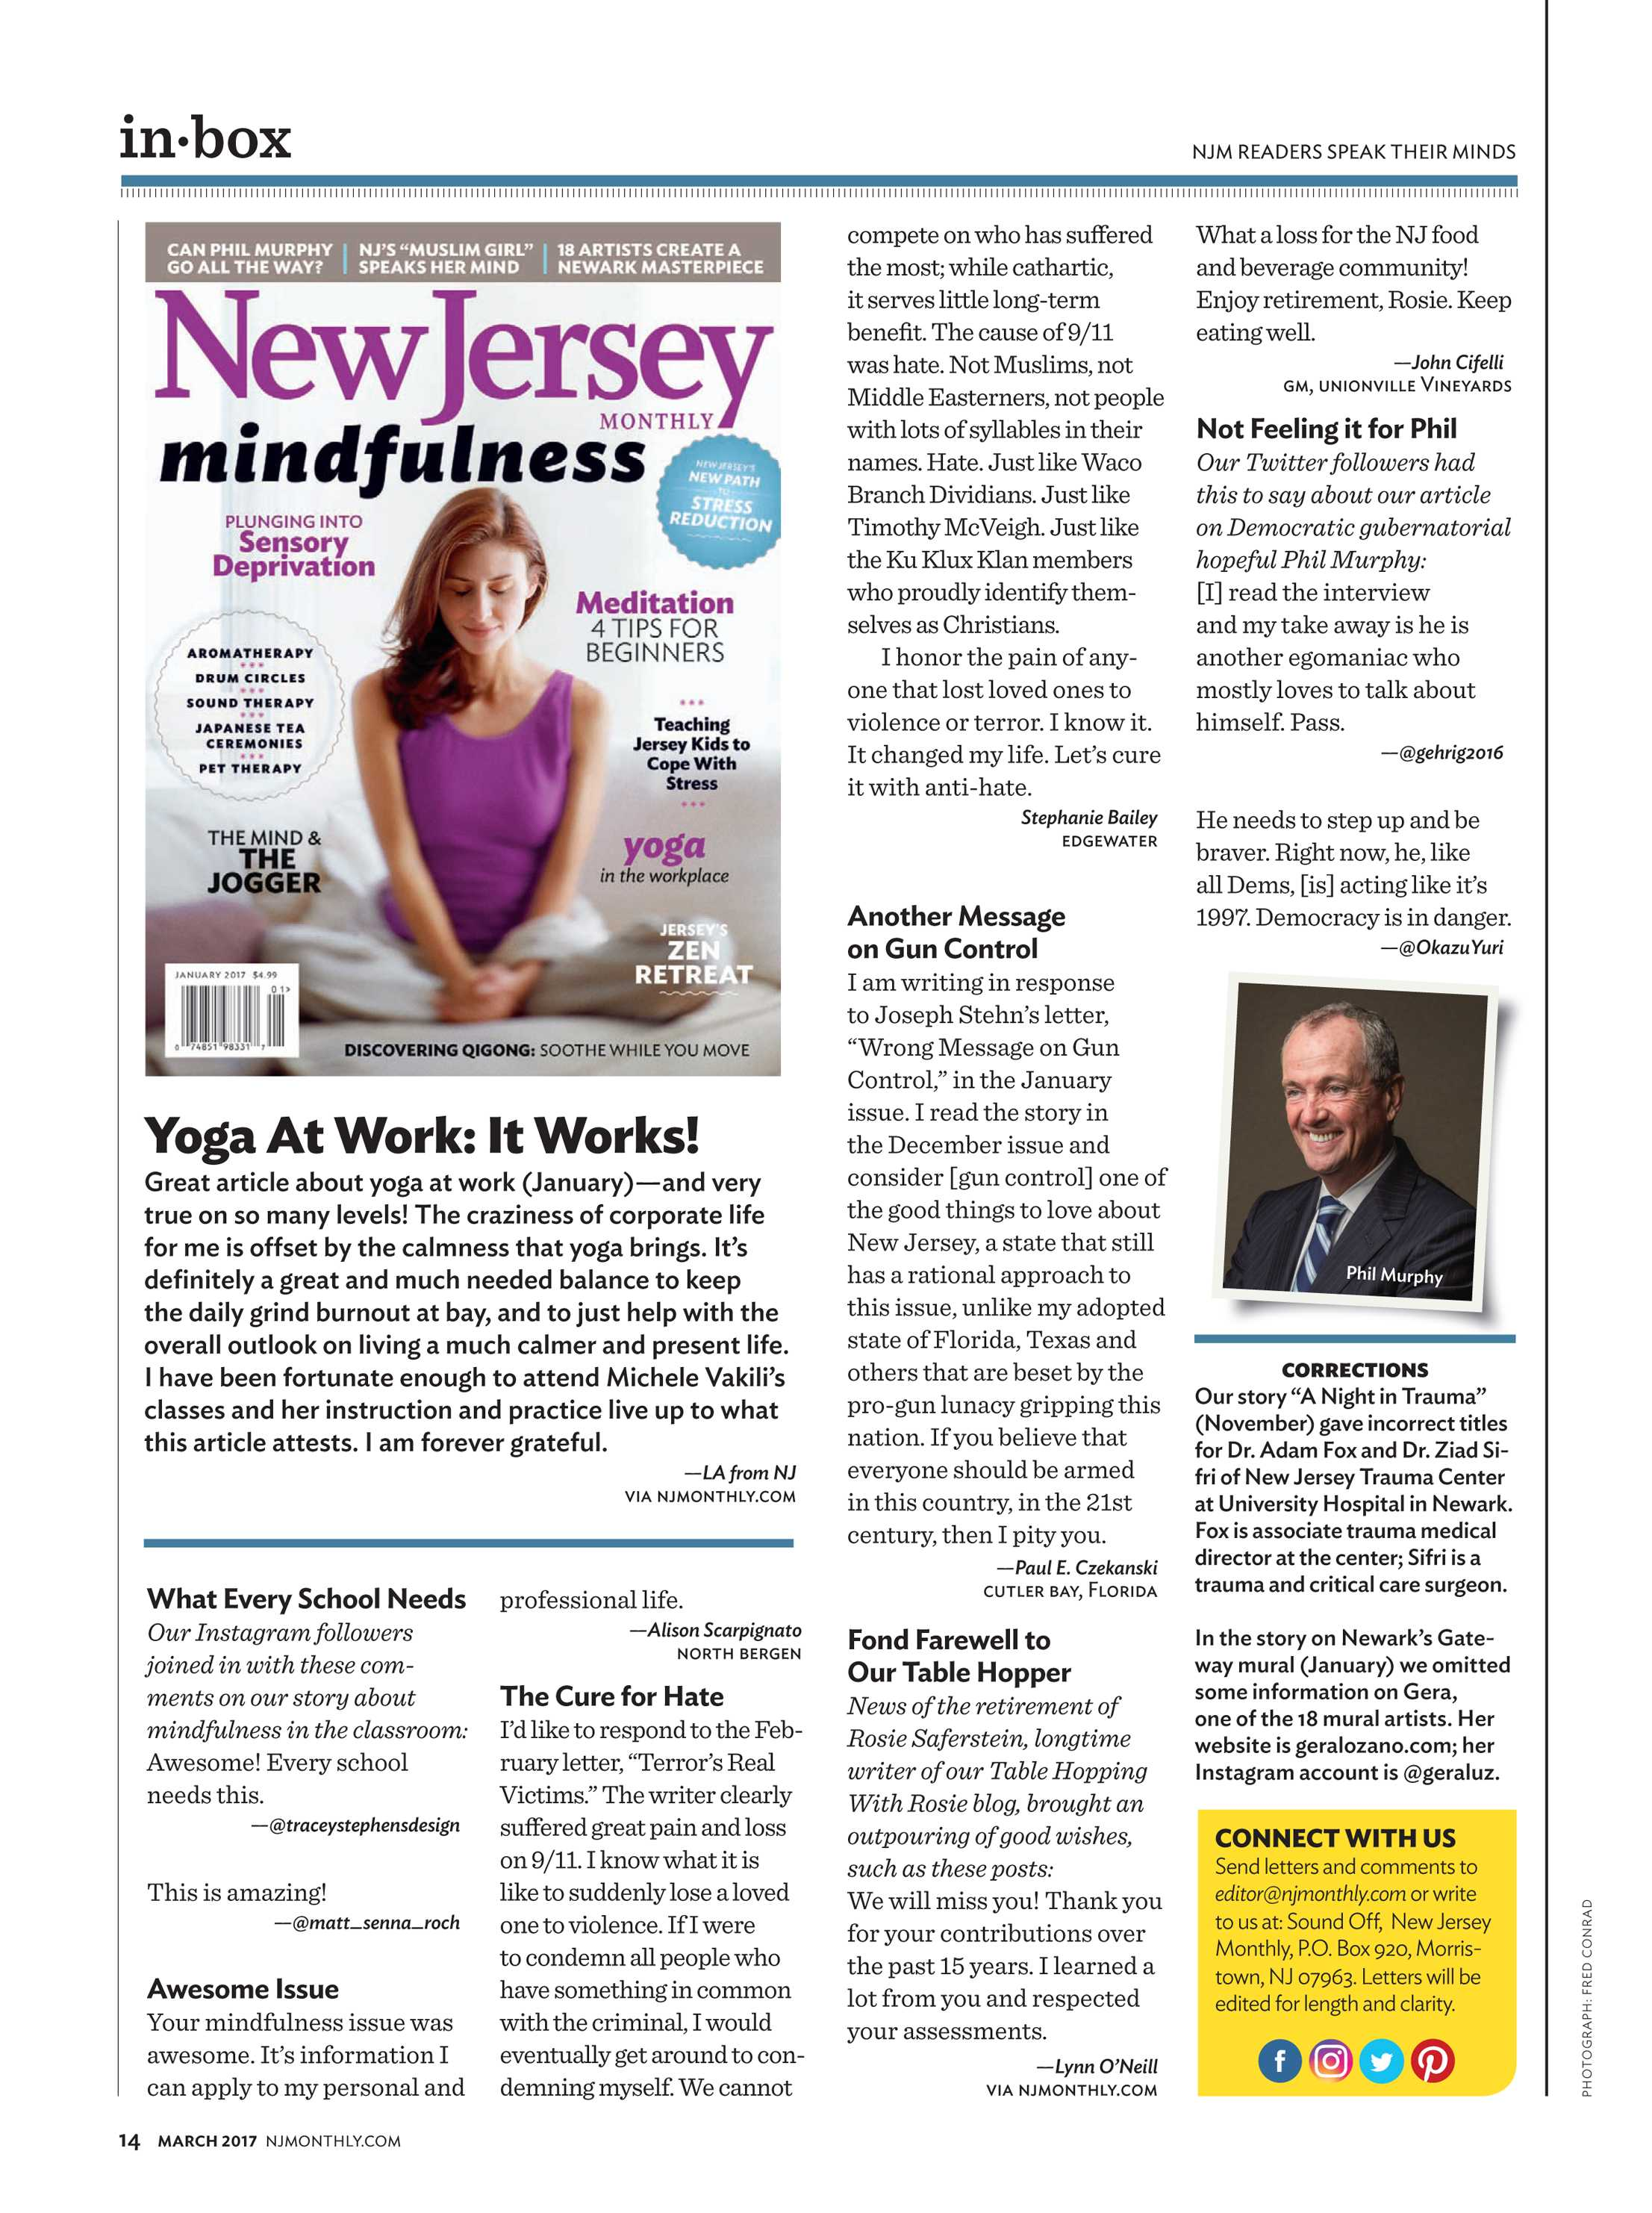 NJ Monthly - March 2017 - page 14